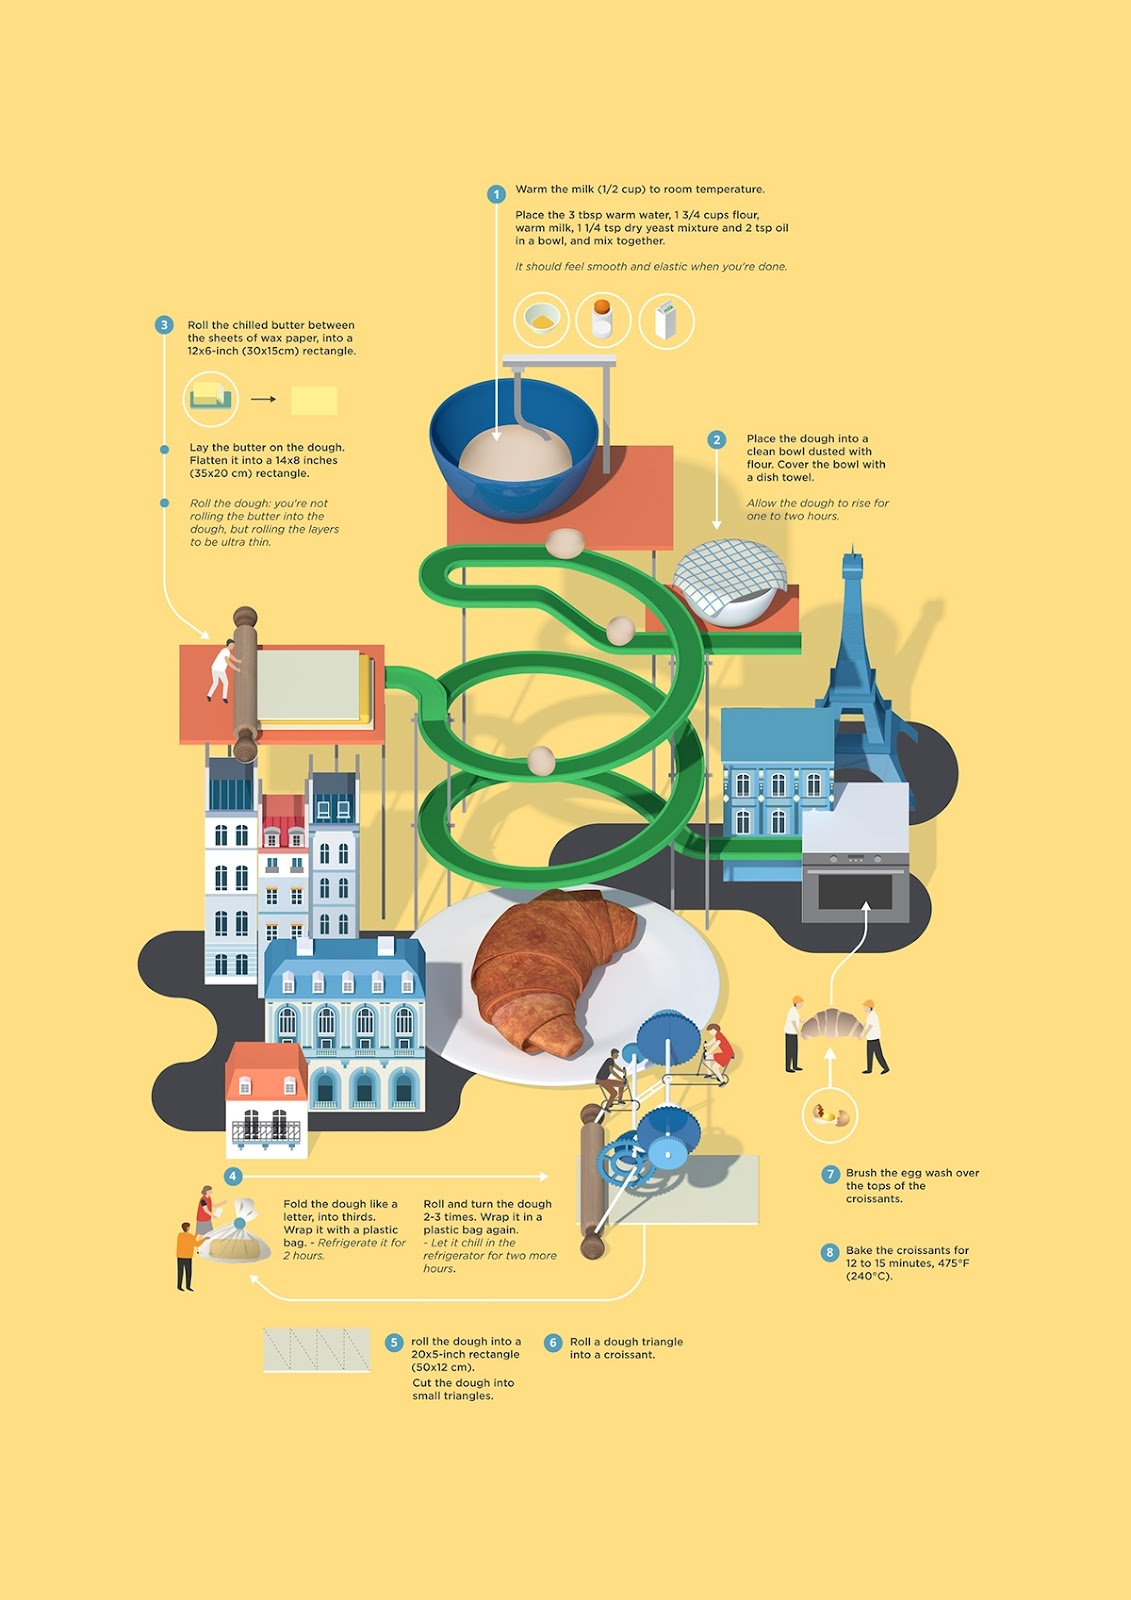 03-Croissant-Jing-Zhang-Recipe-cards-and-Imaginary-Factory-Infographics-www-designstack-co